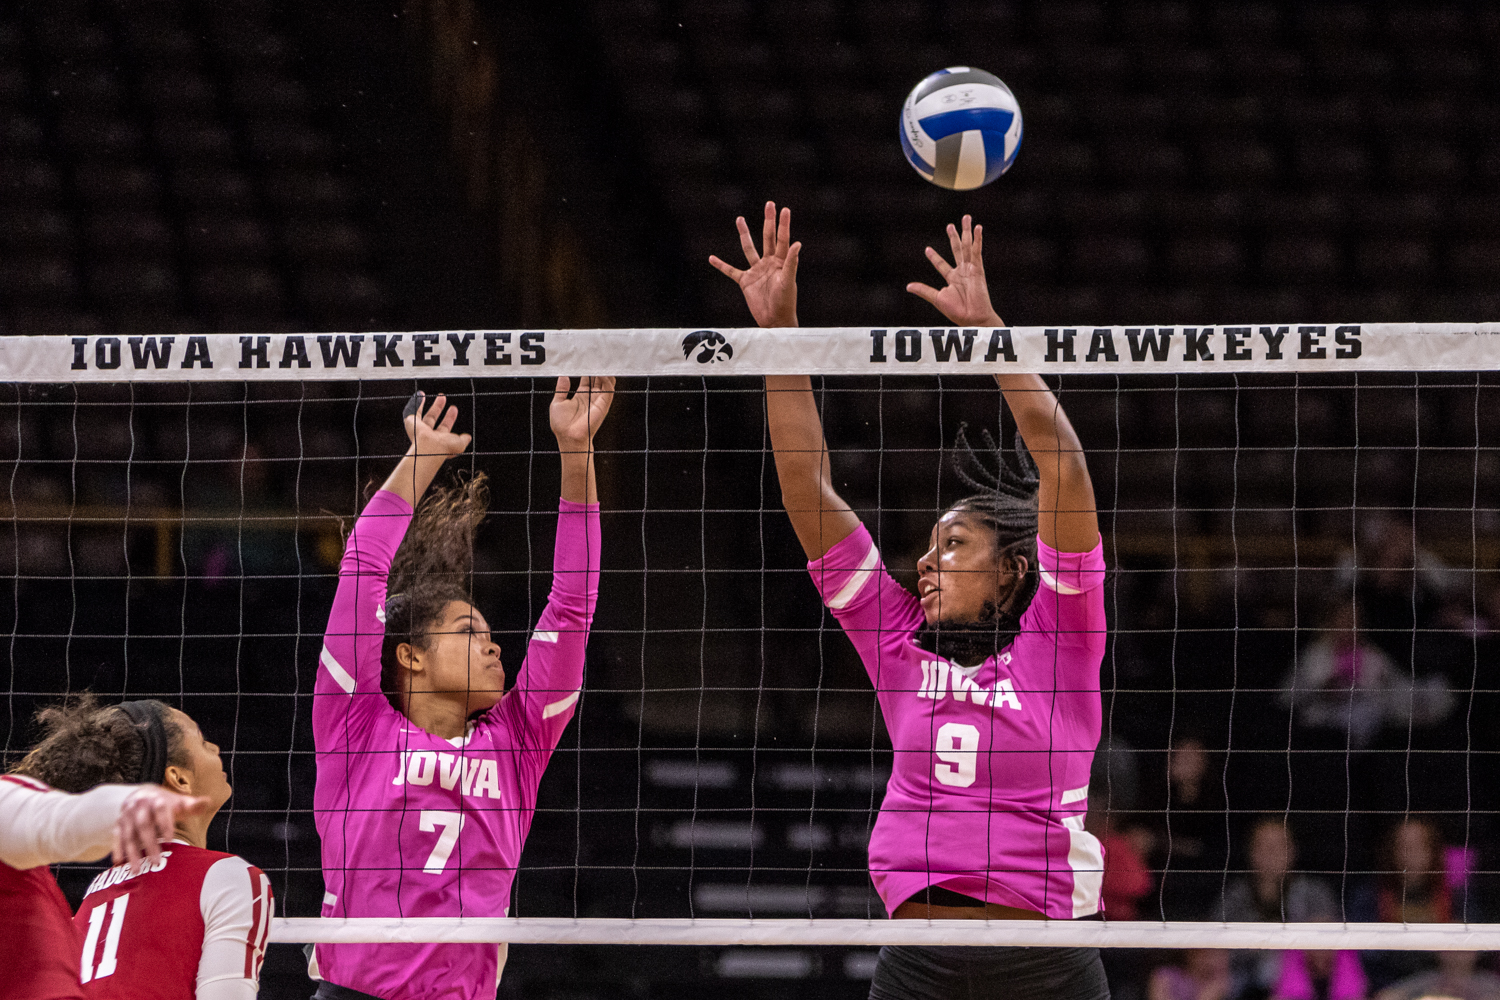 Iowa's Brie Orr and Amiya Jones try to block the ball during a volleyball match against Wisconsin on Saturday, Oct. 6, 2018. The Hawkeyes defeated the number six ranked Badgers 3-2.